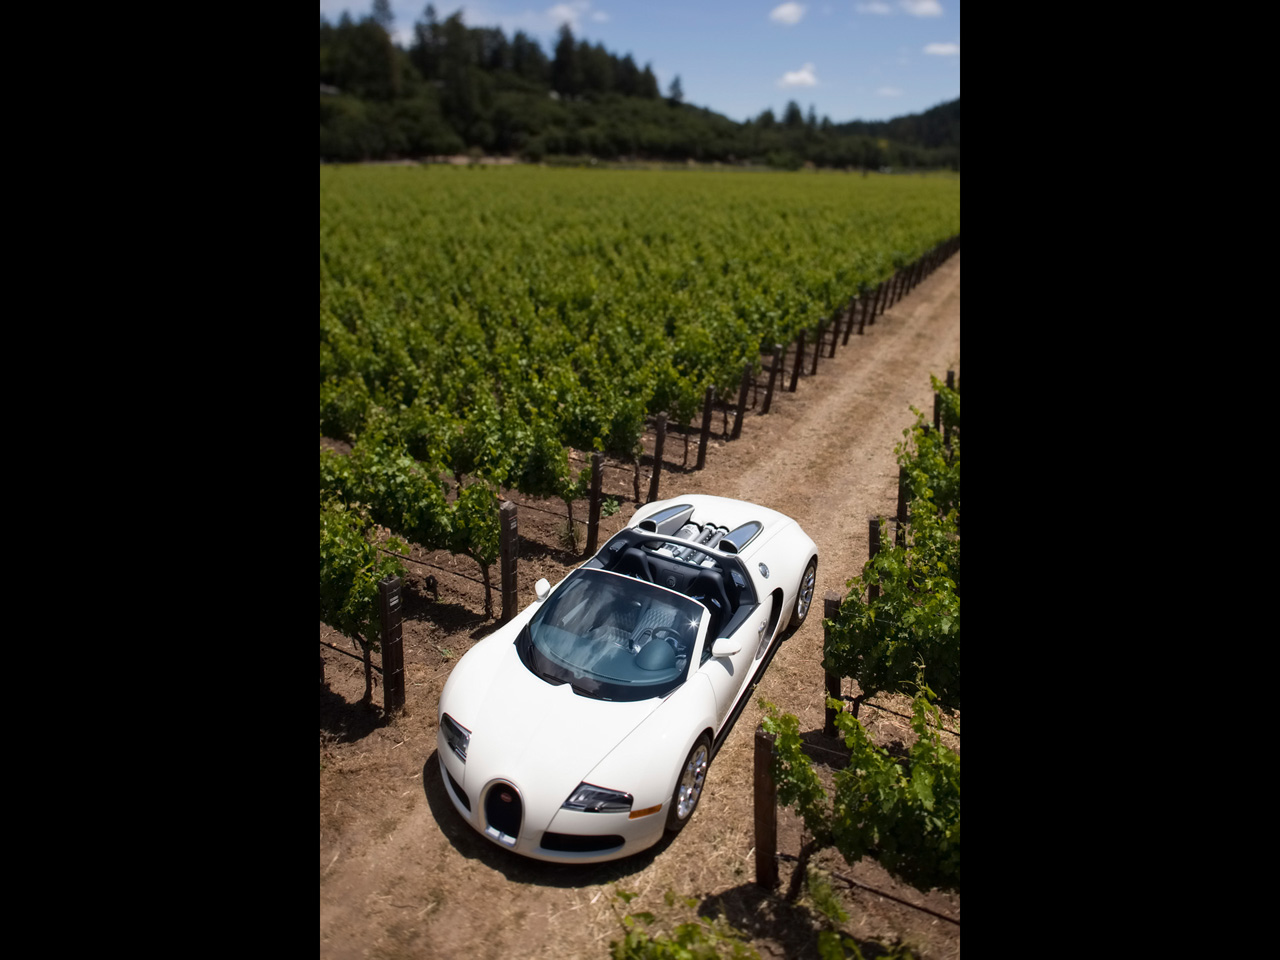 2010 Bugatti Veyron 16.4 Grand Sport in Napa Valley Wallpapers by Cars-wallpapers.net